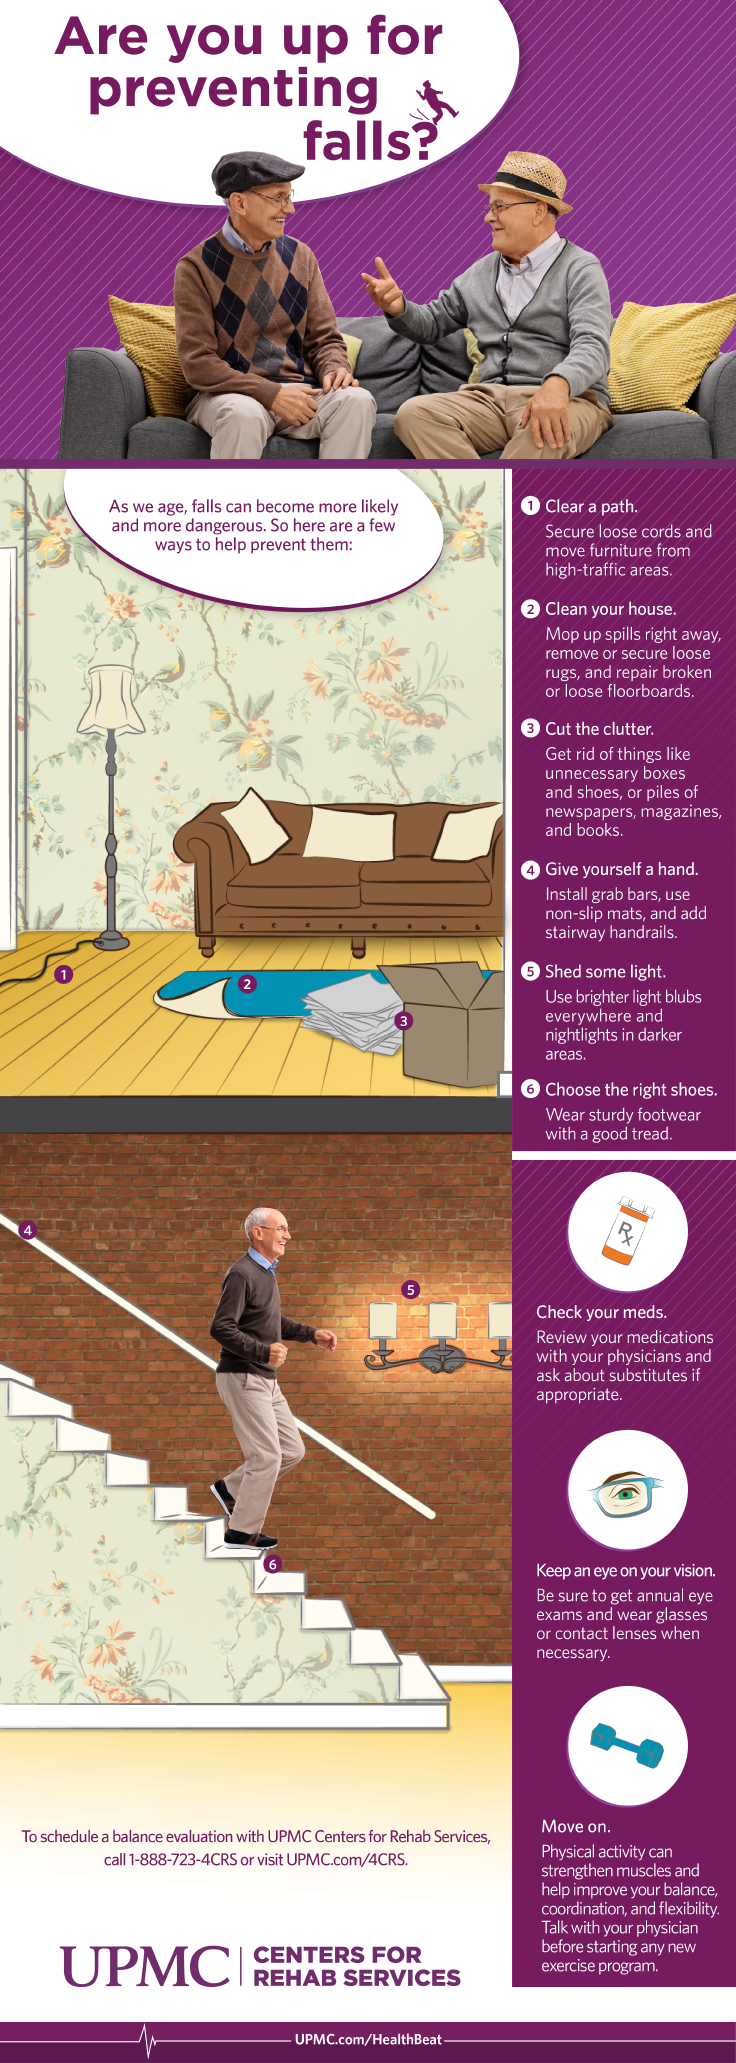 Learn more about preventing falls